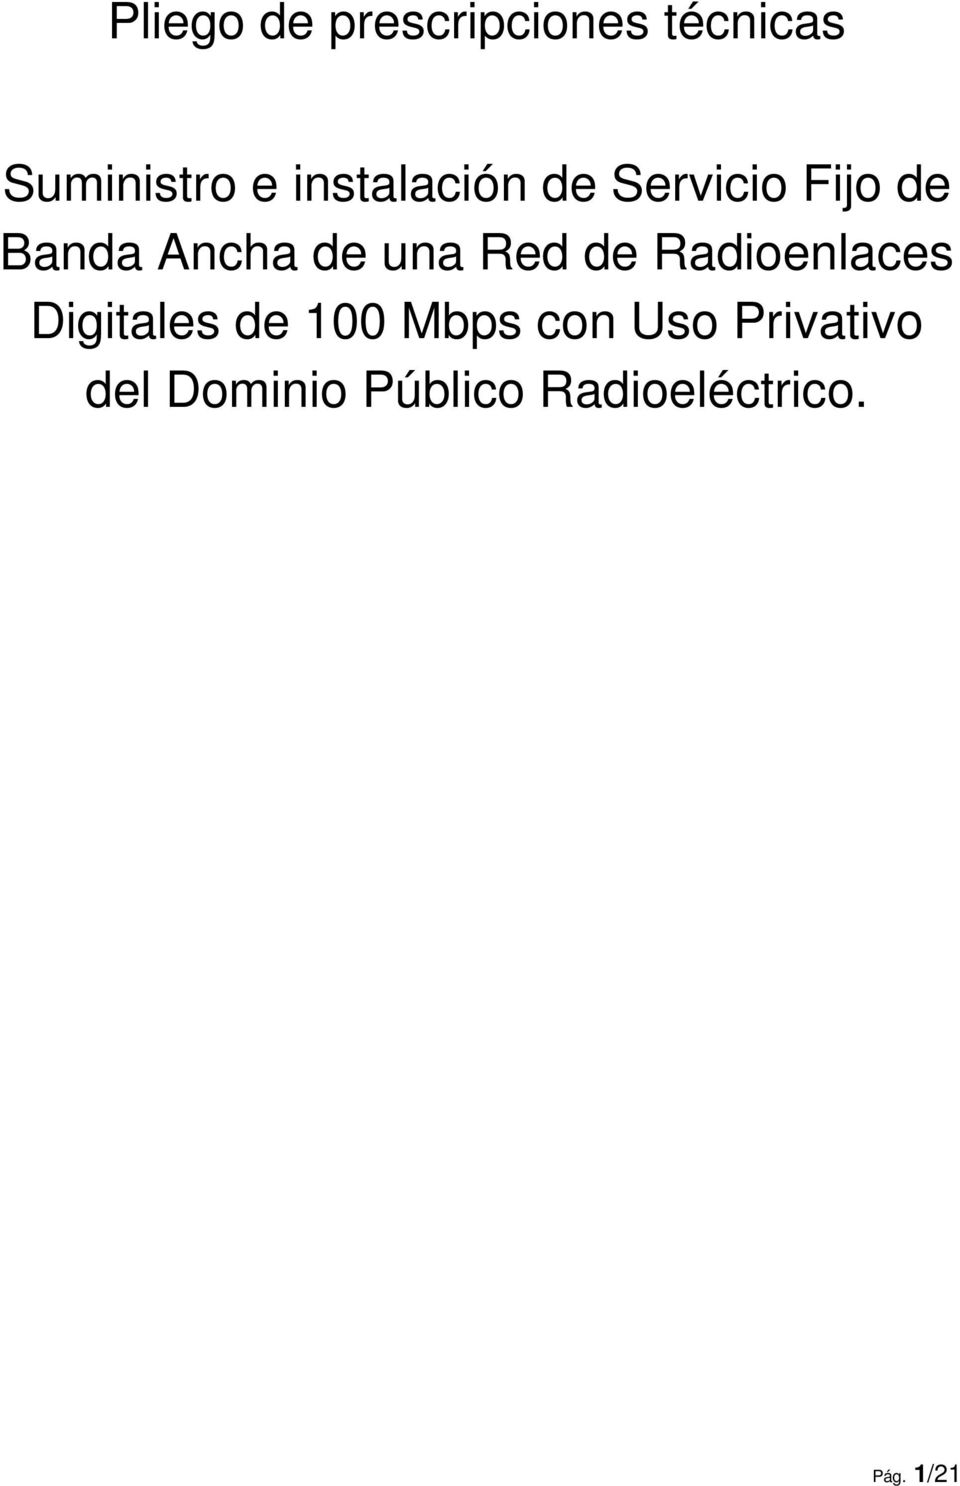 Red de Radioenlaces Digitales de 100 Mbps con Uso